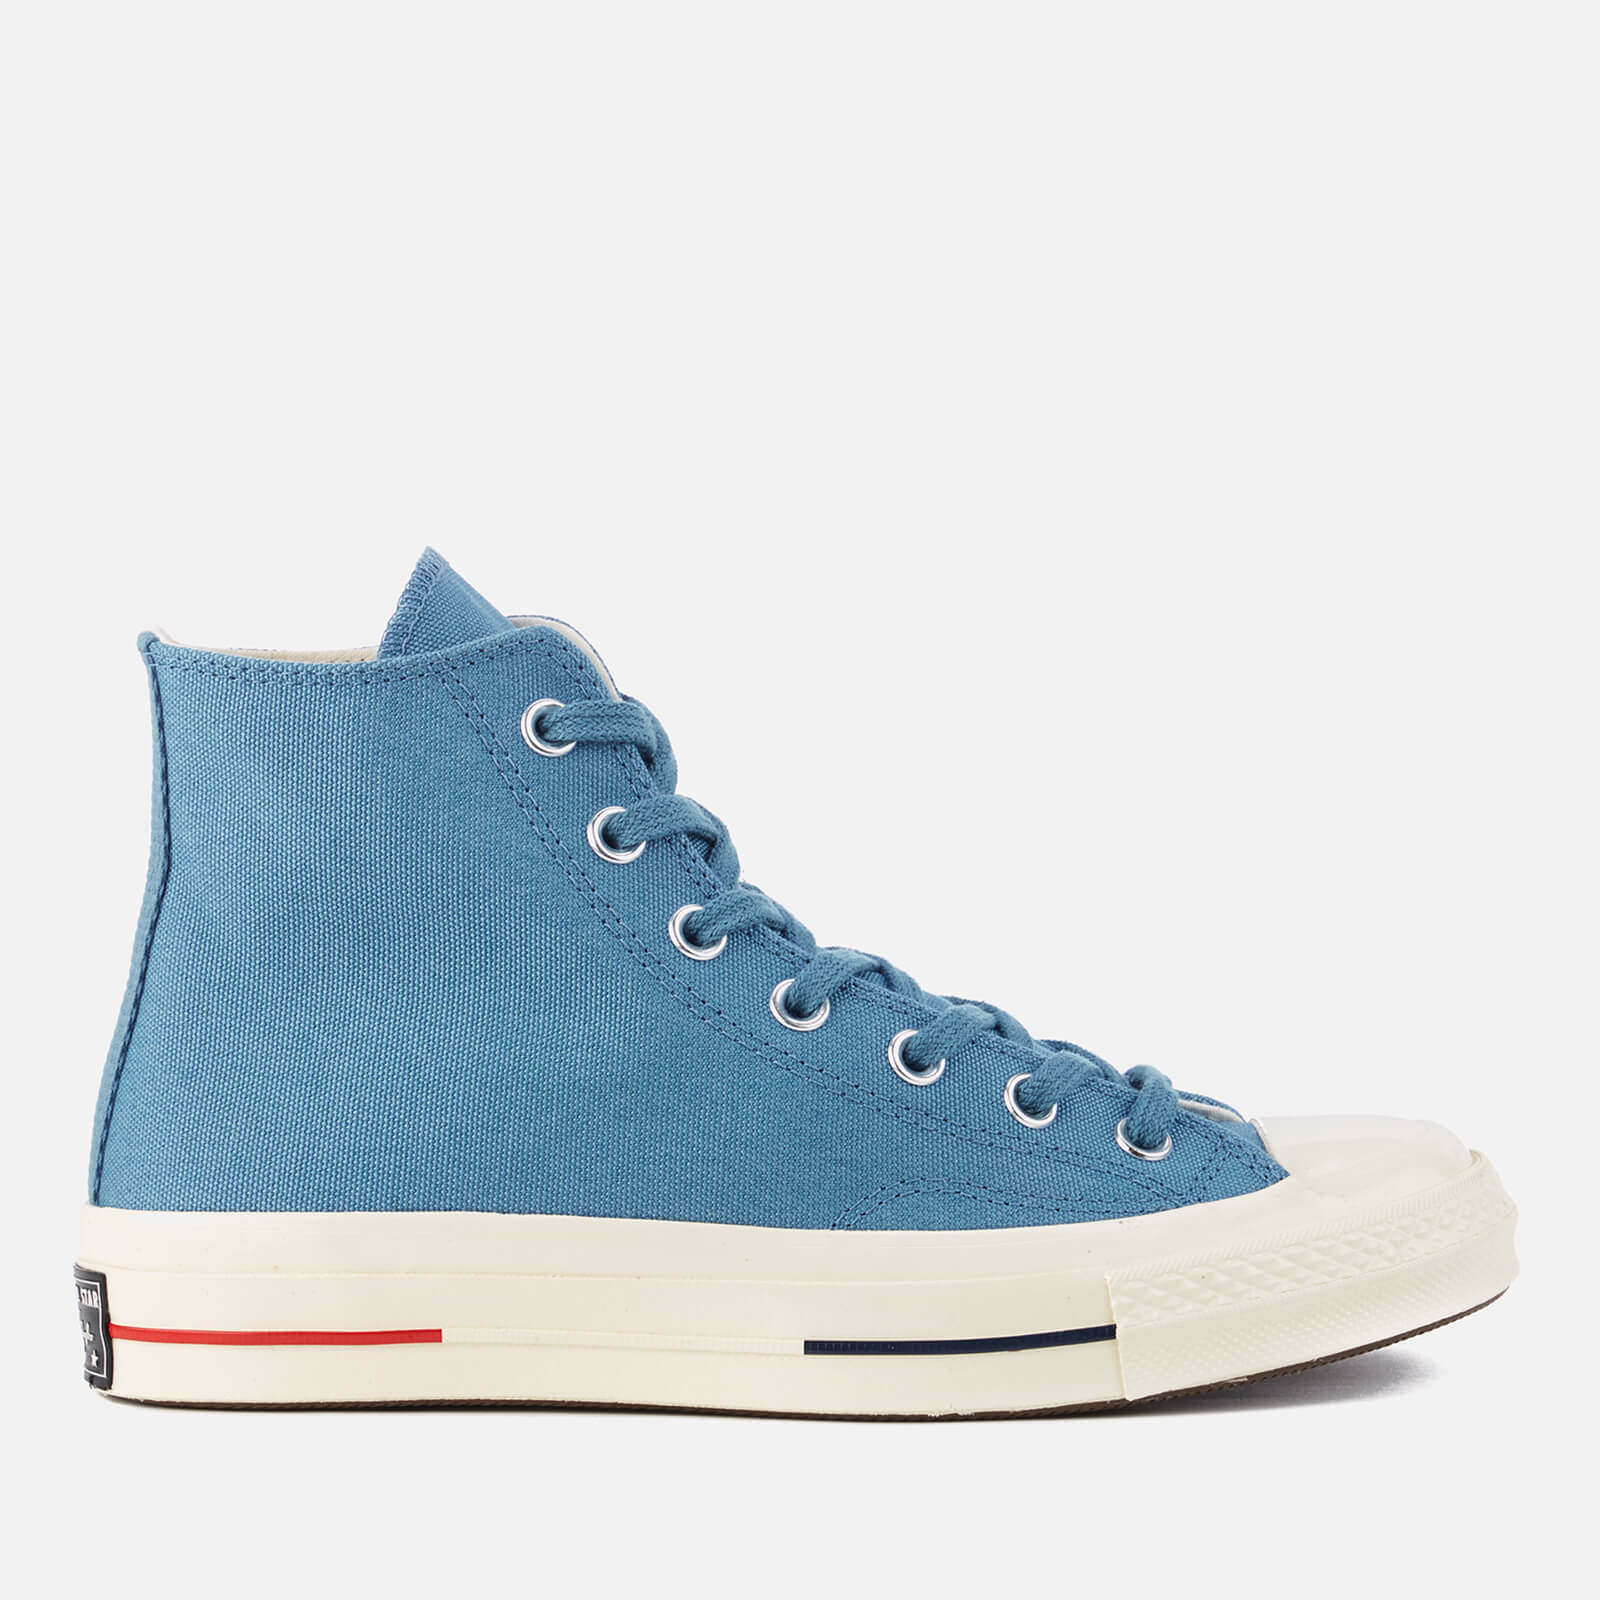 ec12e1eb68 Converse Chuck Taylor All Star '70 Hi-Top Trainers - Aegean Storm/Gym  Red/Navy - Free UK Delivery over £50